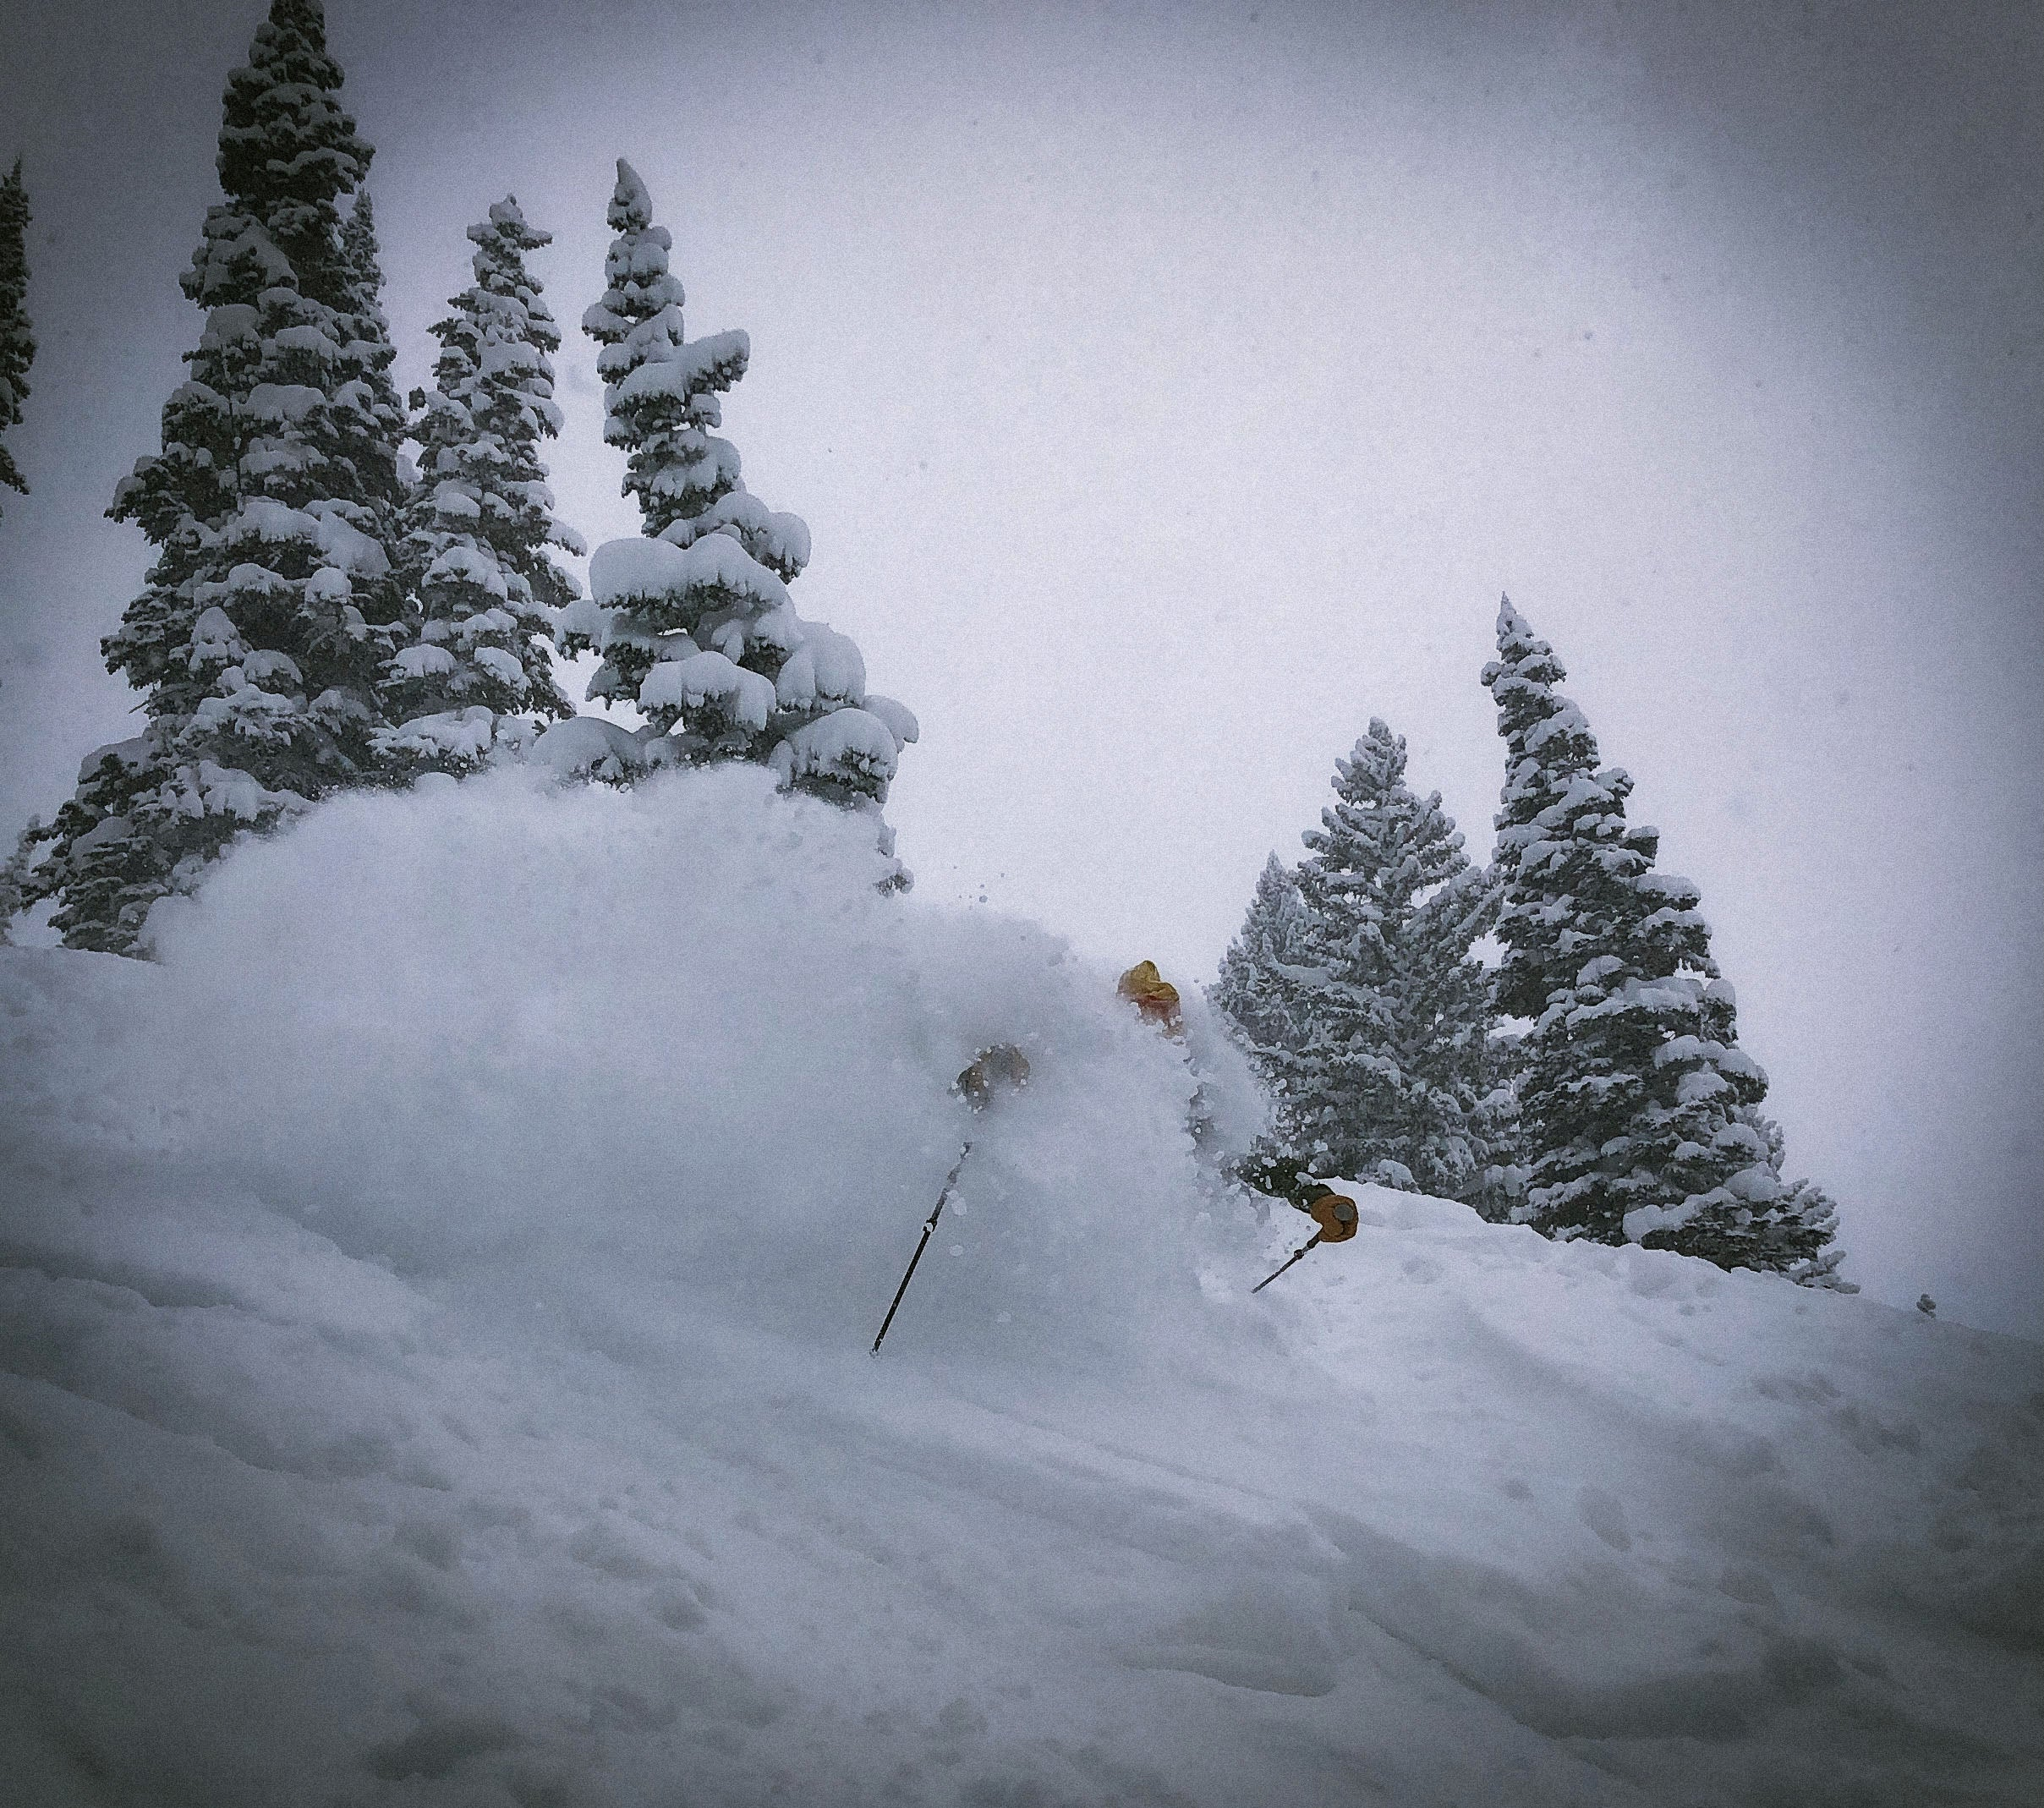 For Some Skiers, Drugs and Alcohol Are Fun, But For Me it Was Something Darker